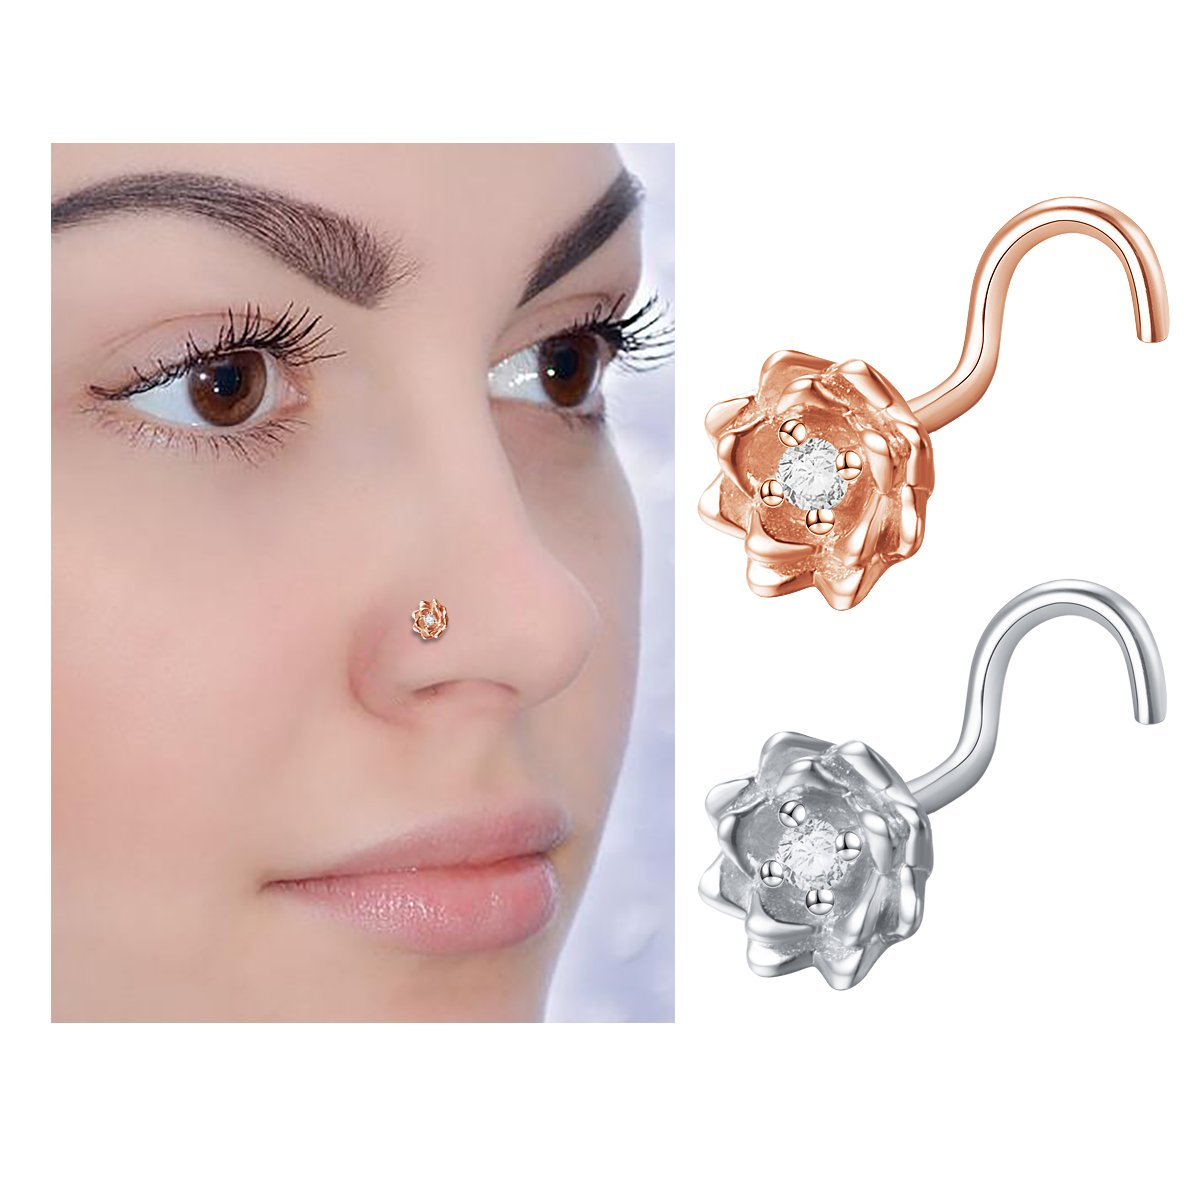 20G Sterling Silver Nose Screw Ring Stud Retainer Labret Rose CZ Flower Nose Piercing Jewelry Harmonyball Jewelry G9ANS1807003A3